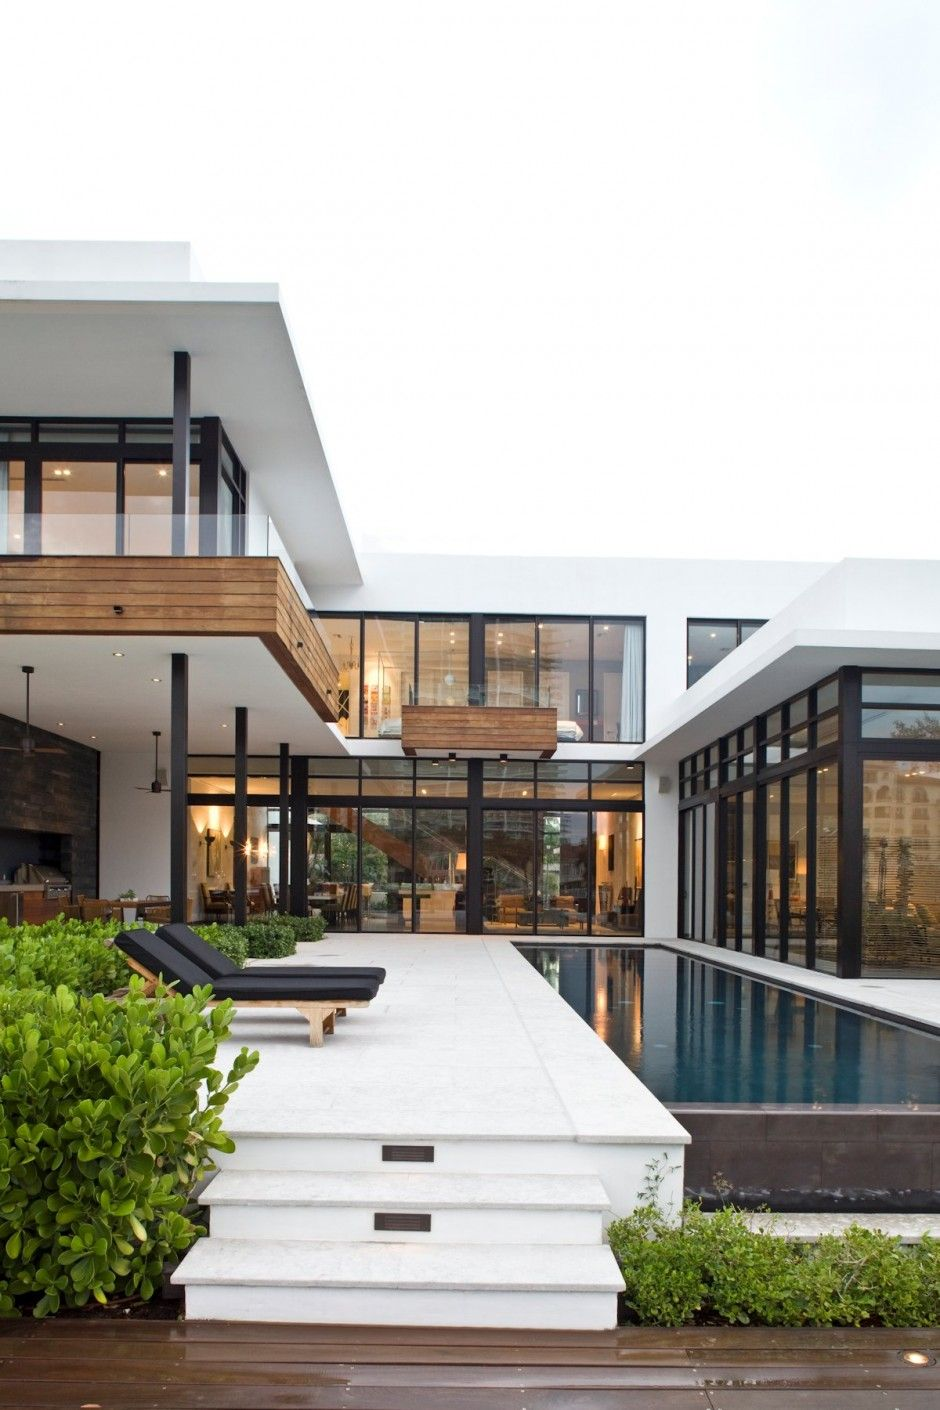 KZ #Architecture Have Designed The South Island Residence, A Single Family  Home Located In